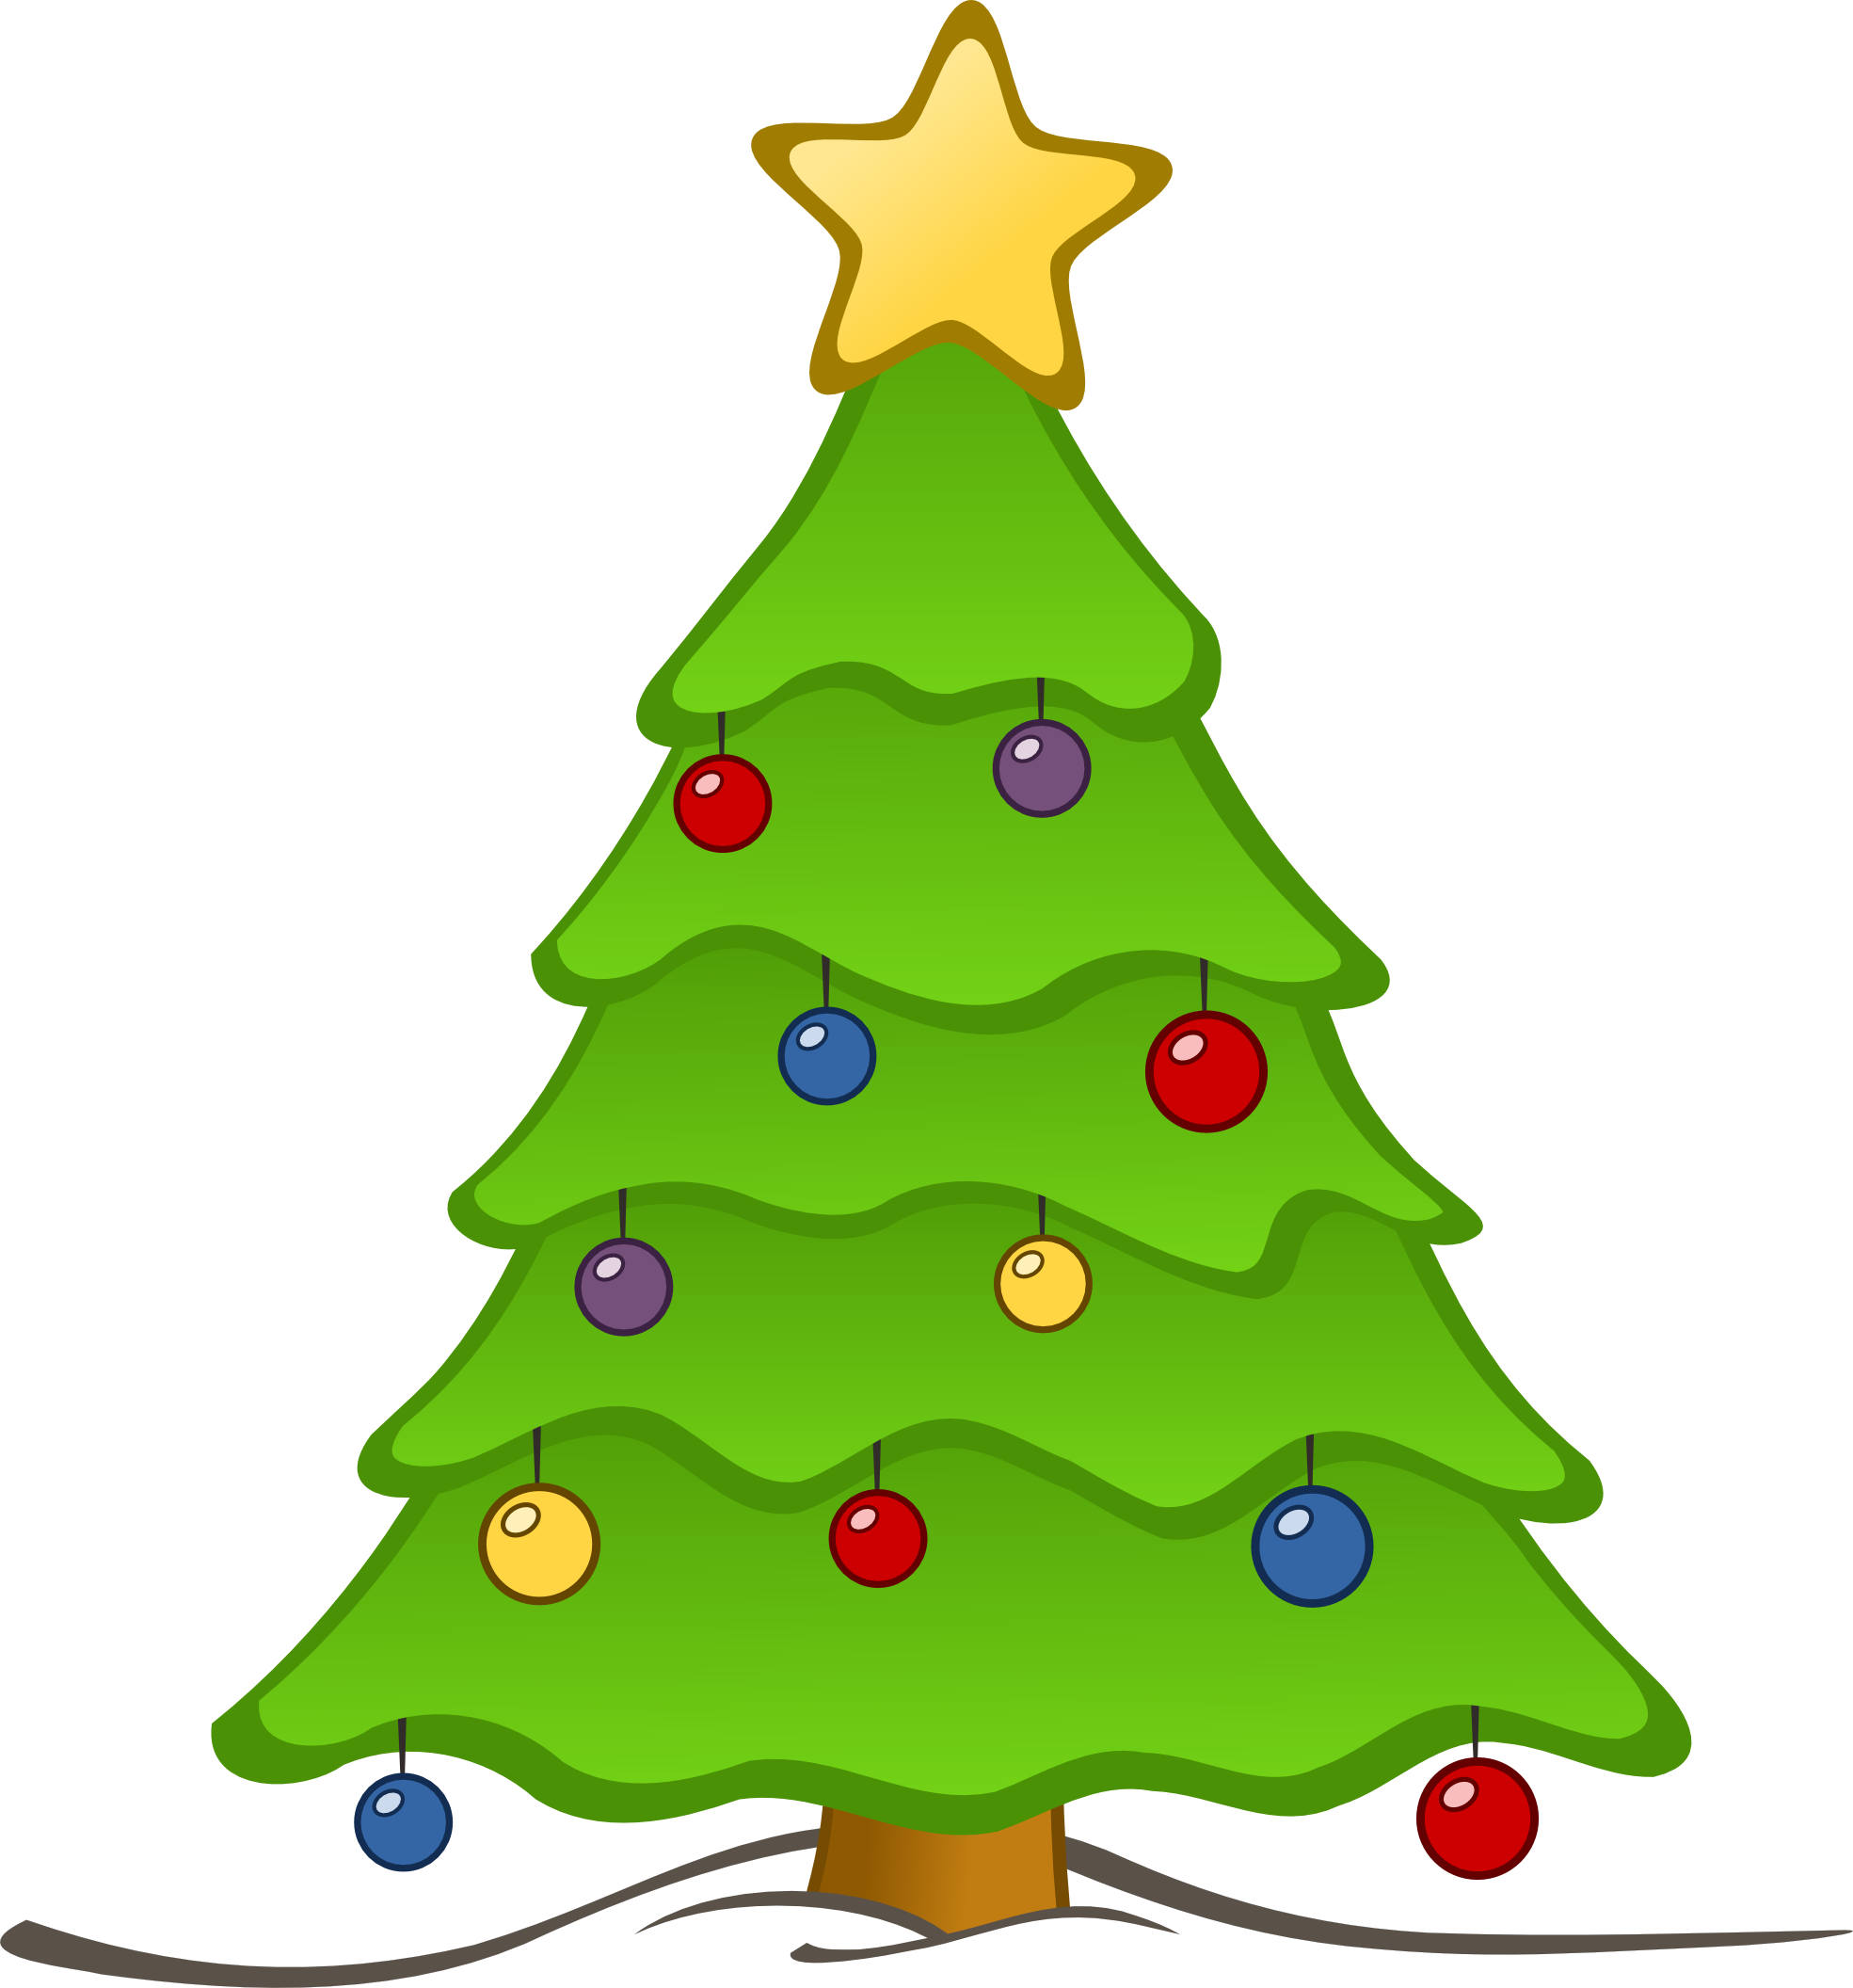 Christmas tree artwork clipart - ClipartFest svg library download